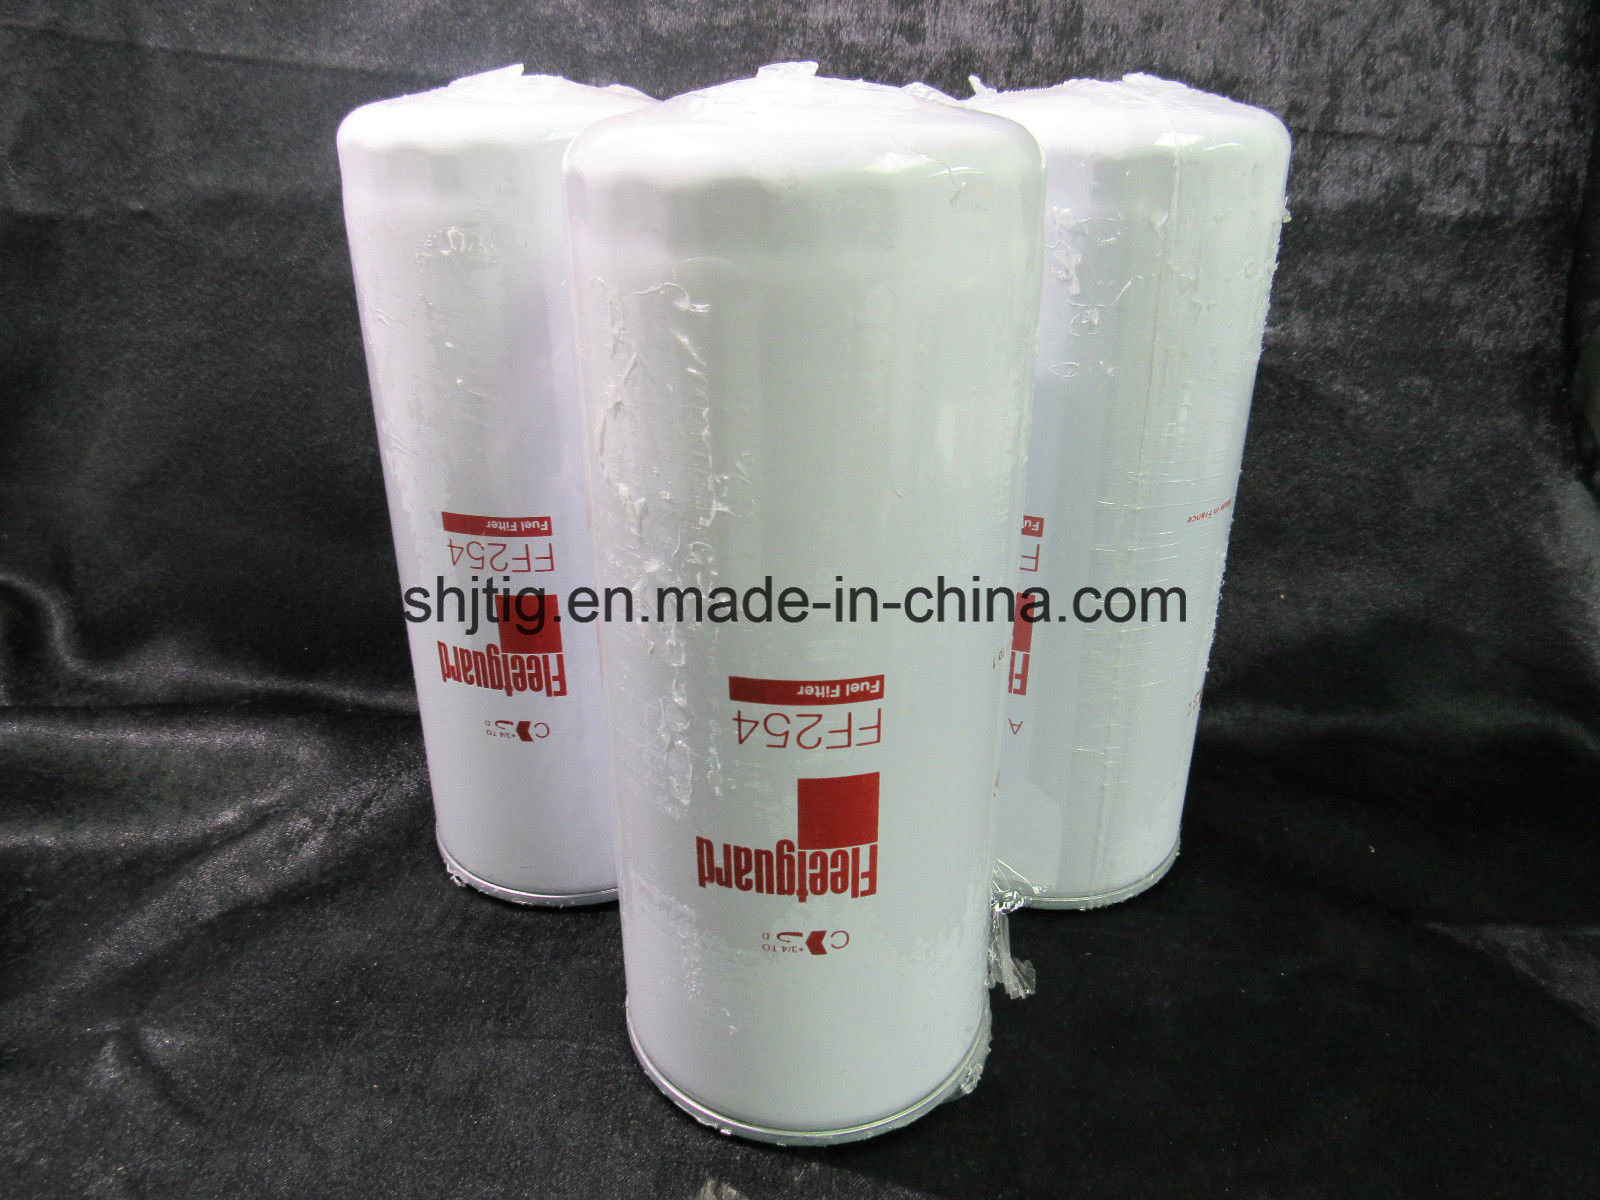 China Fuel Filter Ff254 For Volvo Dump Trucks Excavators Loaders 6 5l Housing Oil